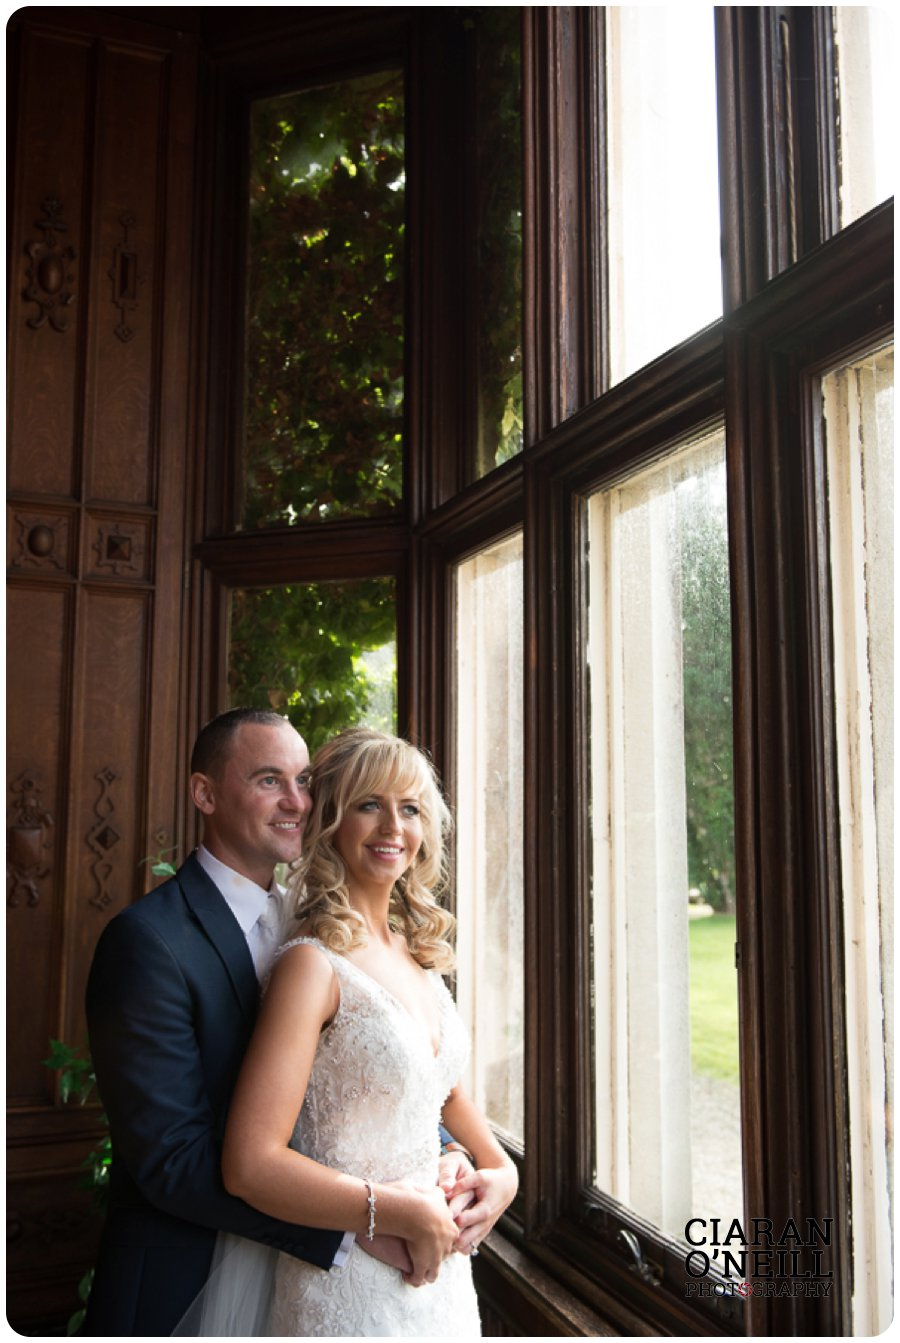 sheena-patricks-wedding-at-the-killyhevlin-hotel-spa-by-ciaran-oneill-photography-18